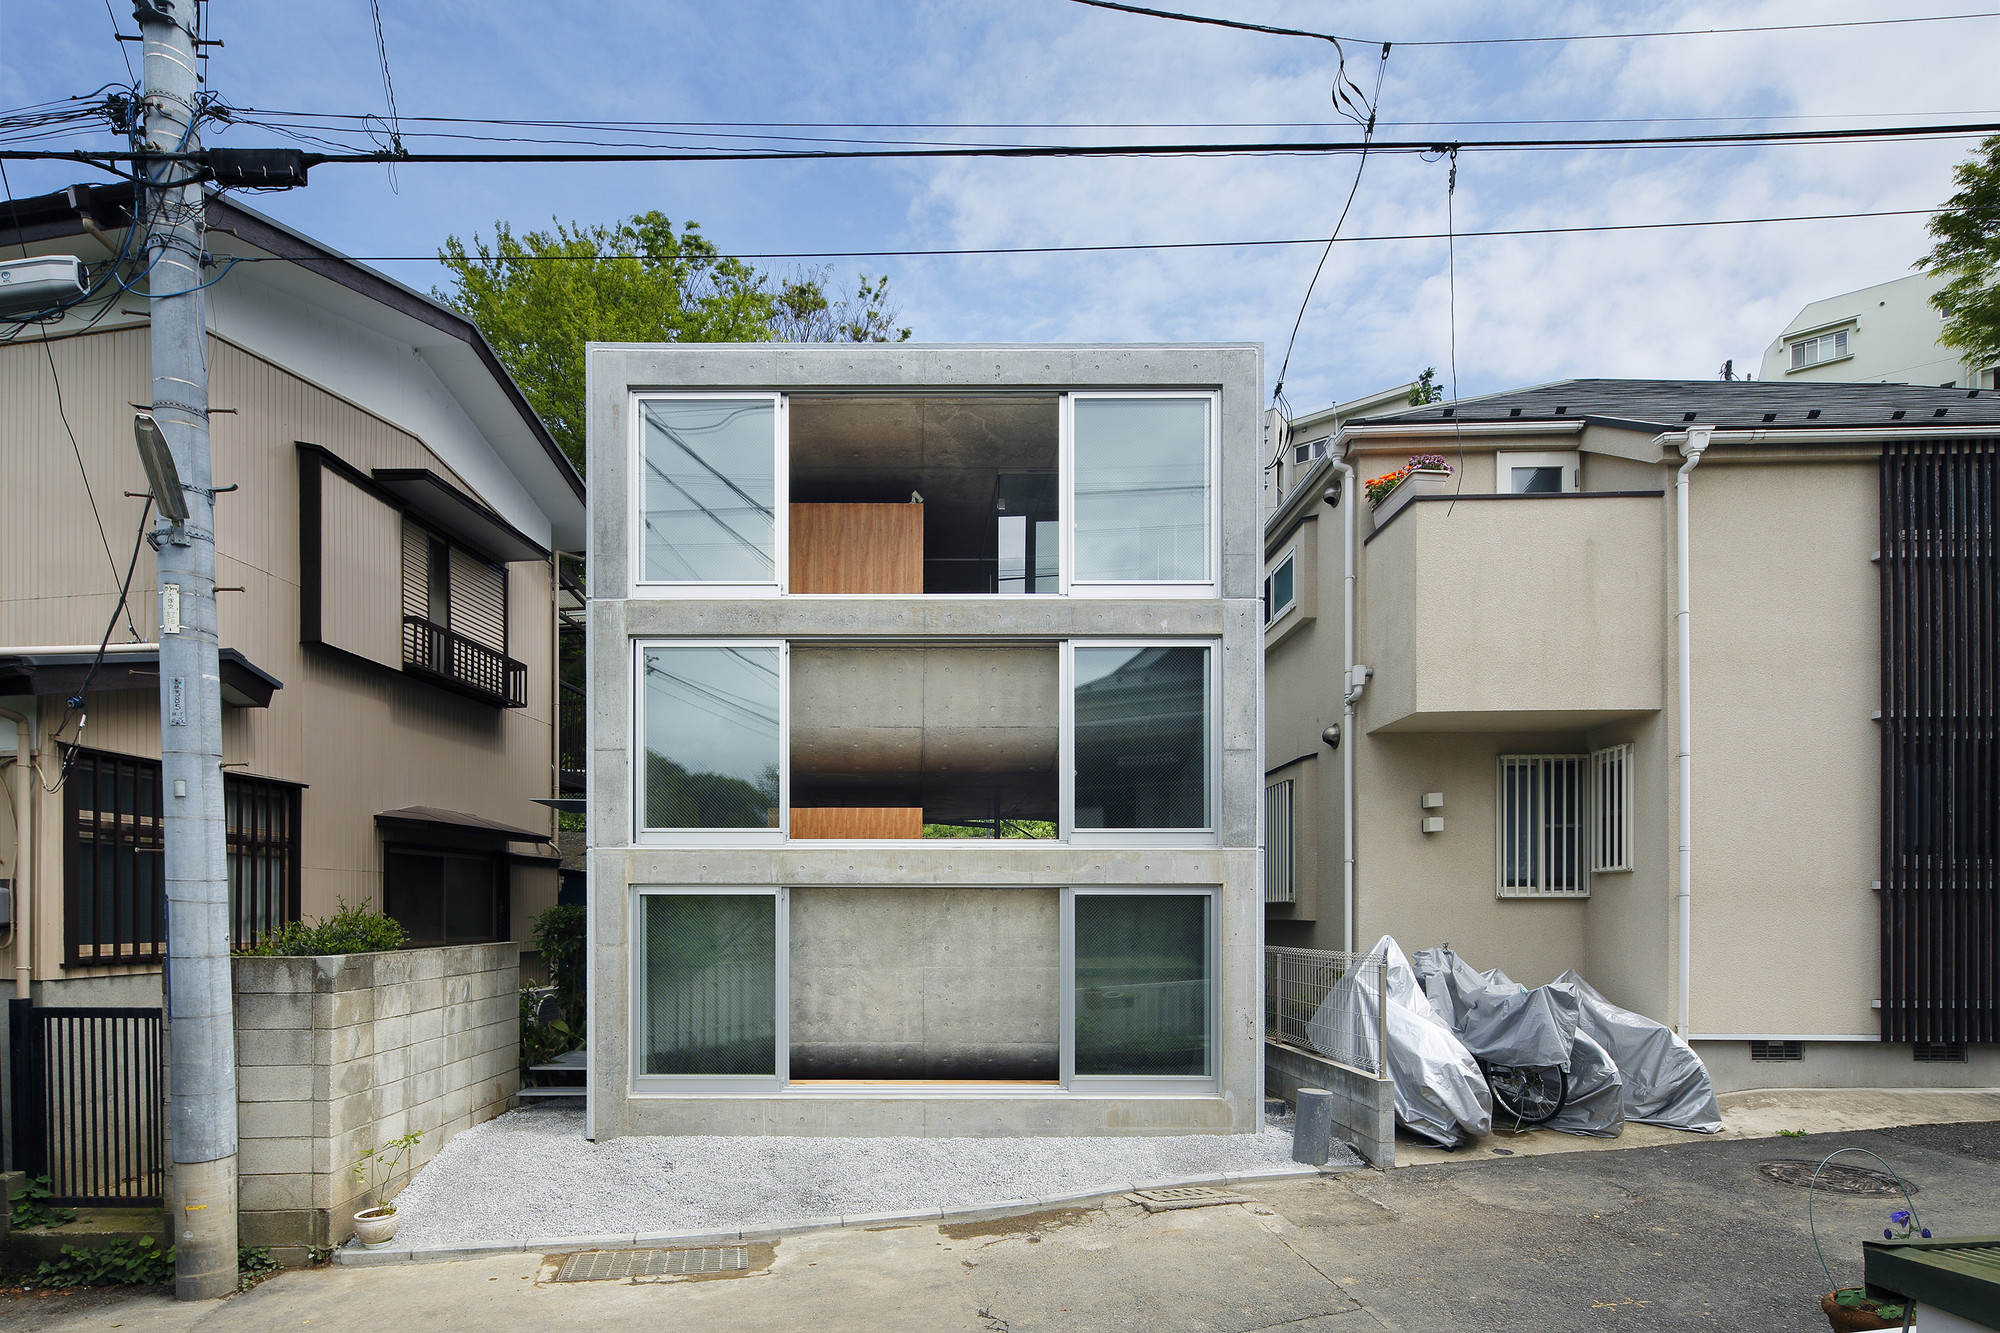 Gallery of house in byoubugaura takeshi hosaka 5 for Architecture japonaise moderne